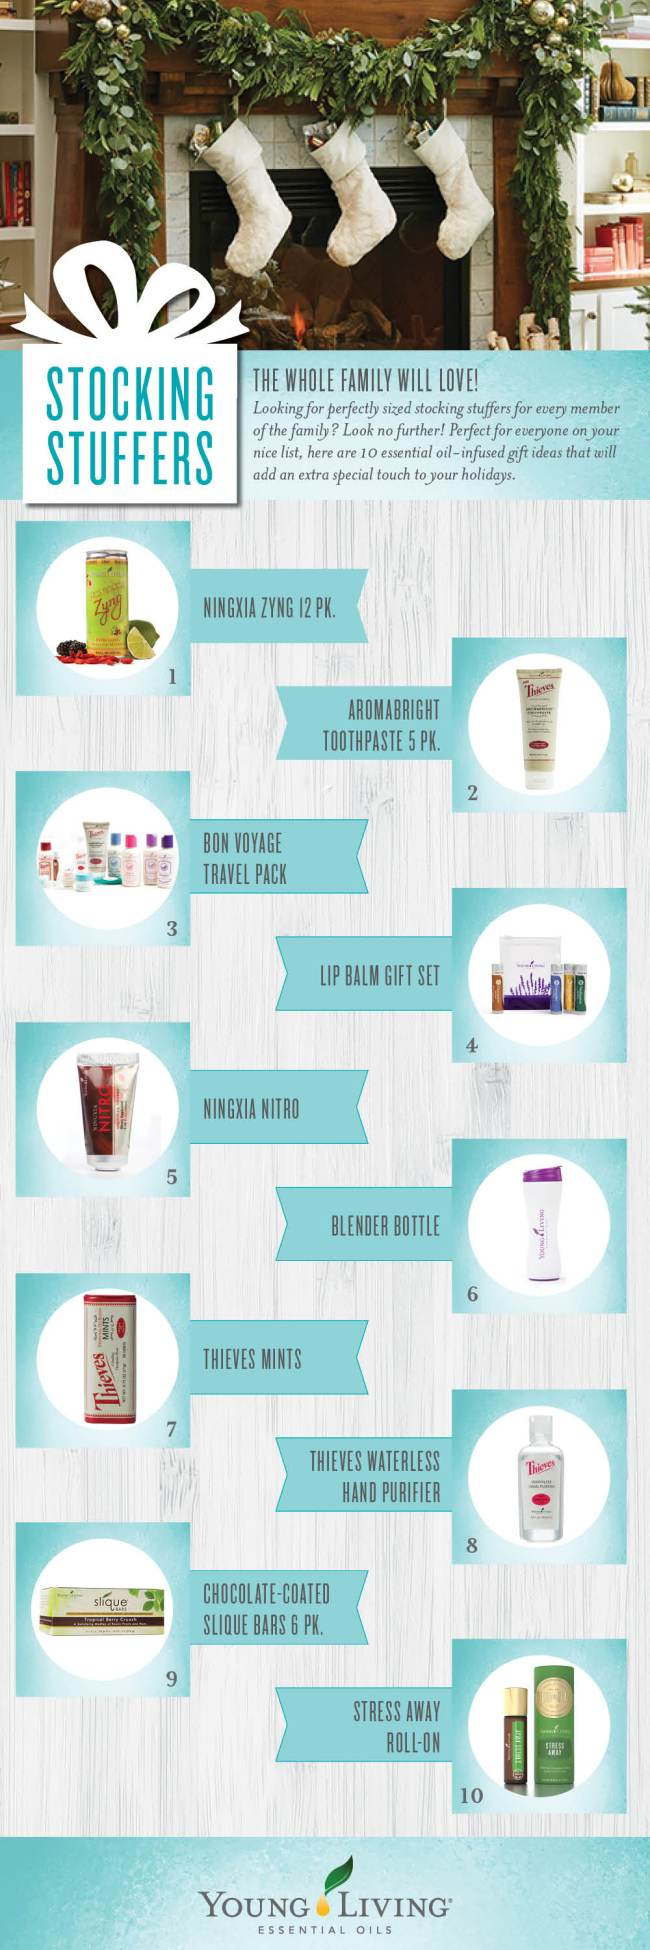 Young Living stocking stuffer ideas - Black Pepper, Blender Bottle, Chocolate-Coated Slique Bars, Copaiba, Lime, NingXia Nitro, NingXia Zyng, Orange, Stress Away, Thieves Mints, Thieves AromaBright Toothpaste, Bon Voyage Travel Pack, Lip Balm Gift Set, Thieves Waterless Hand Purifier, Stress Away Roll On